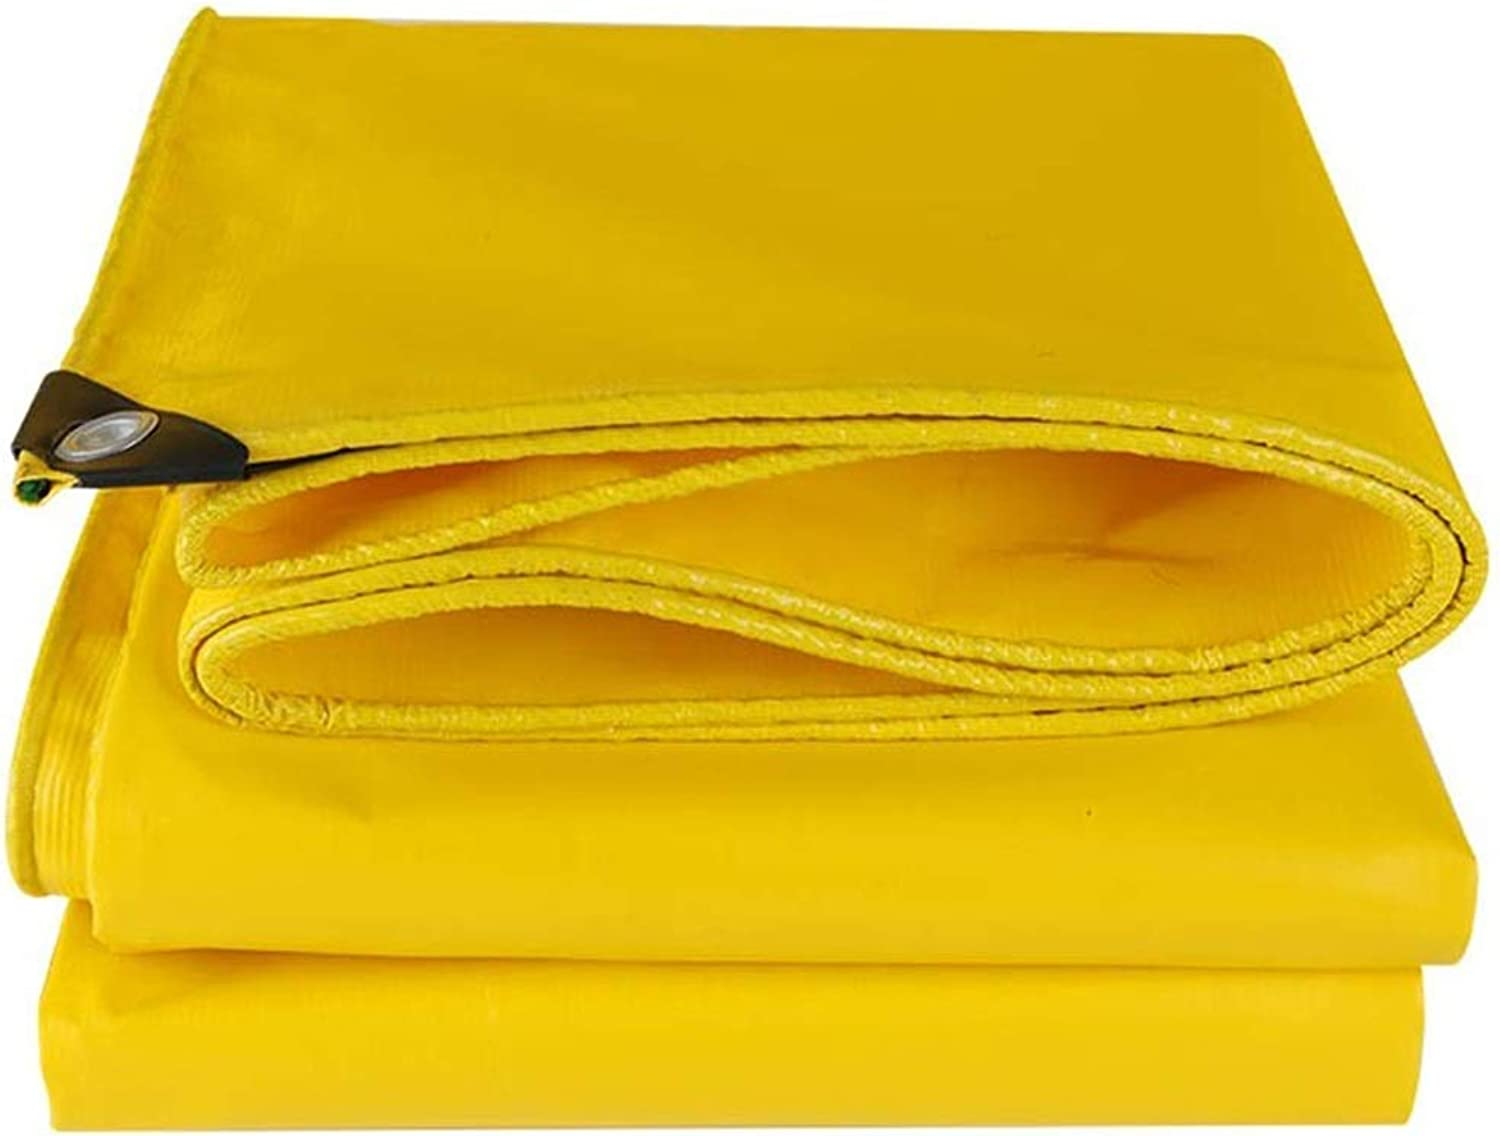 Tarp MultiPurpose Waterproof Tarpaulin with Grommets, Reinforced RipStop & Corner Reinforcement, Yellow  500g m2